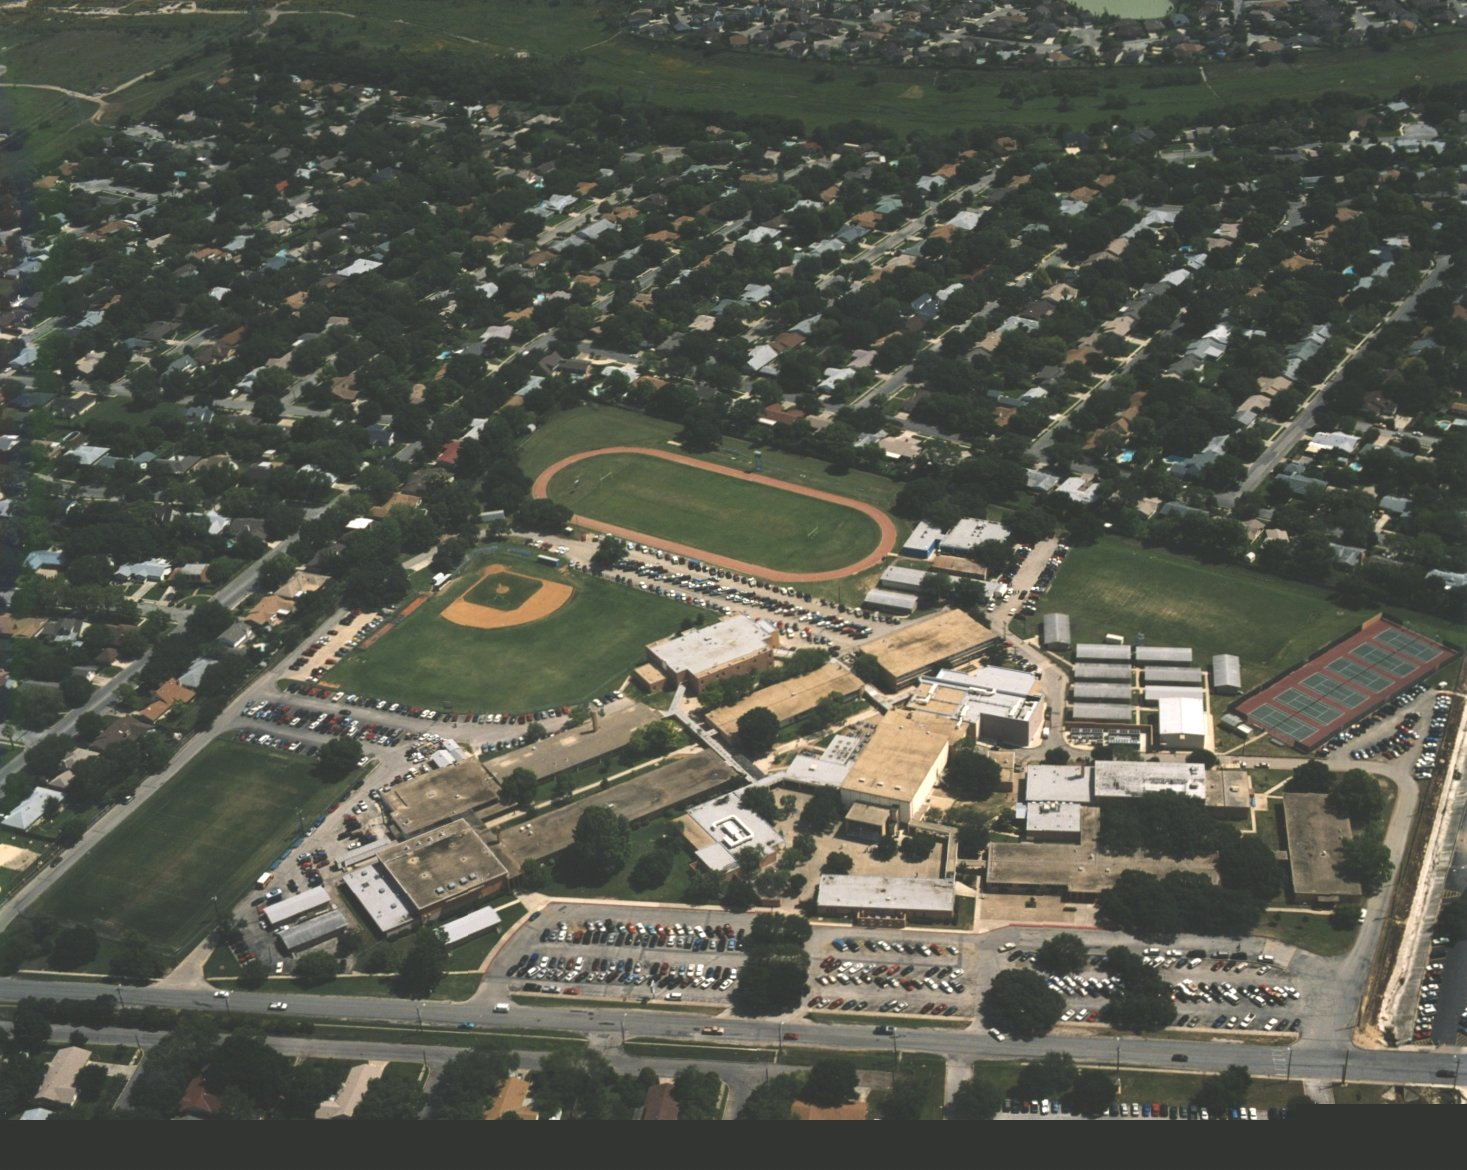 An aerial view of my high school from 2000, the year I graduated.